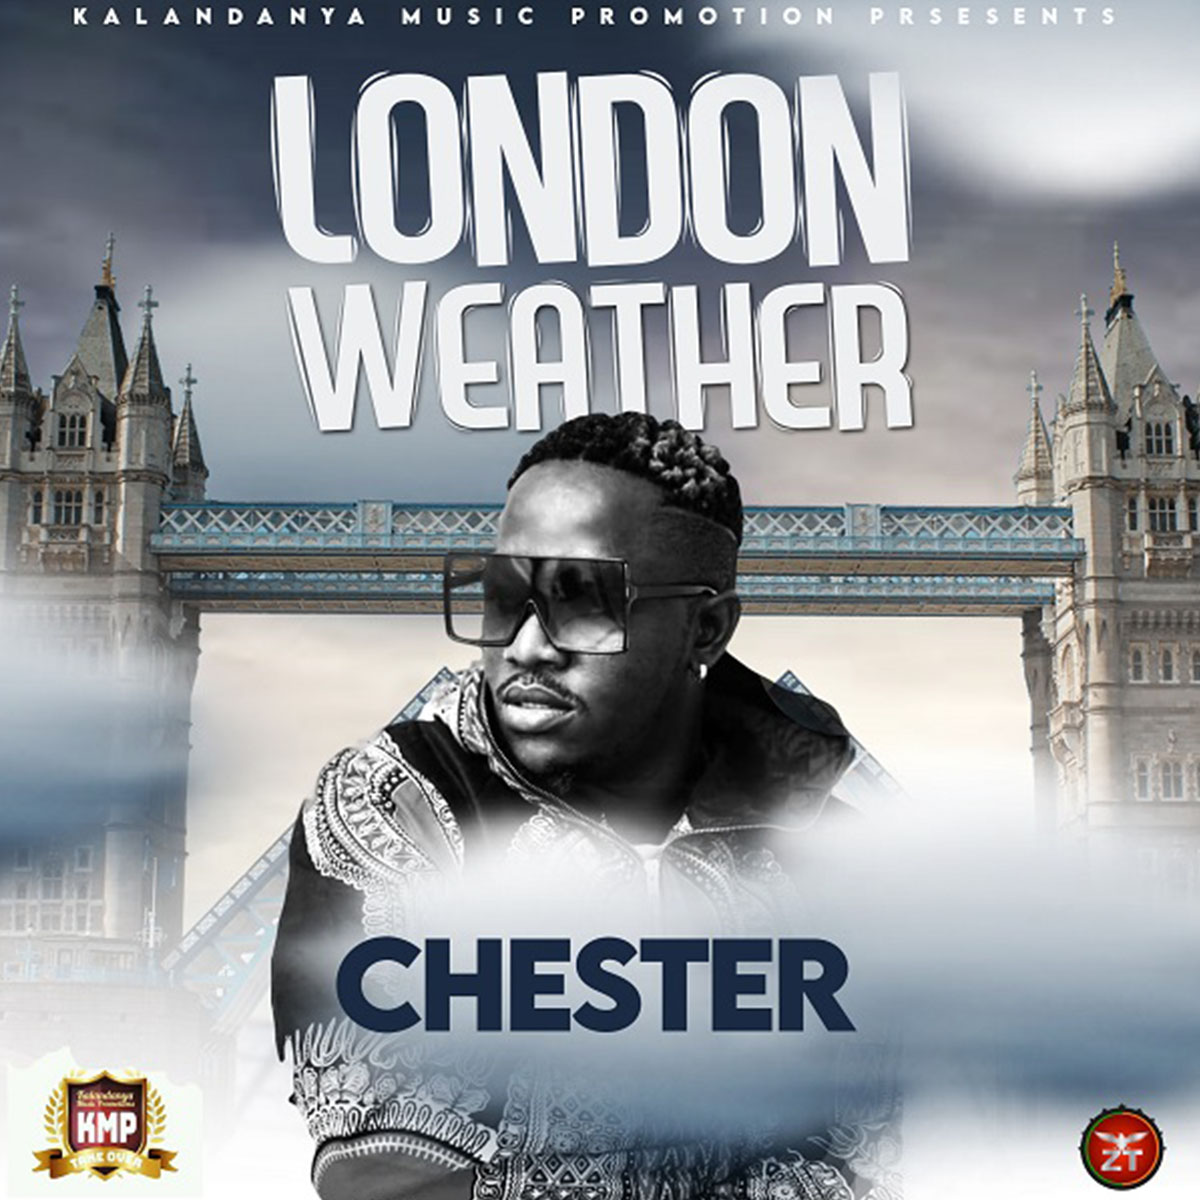 Chester - London Weather